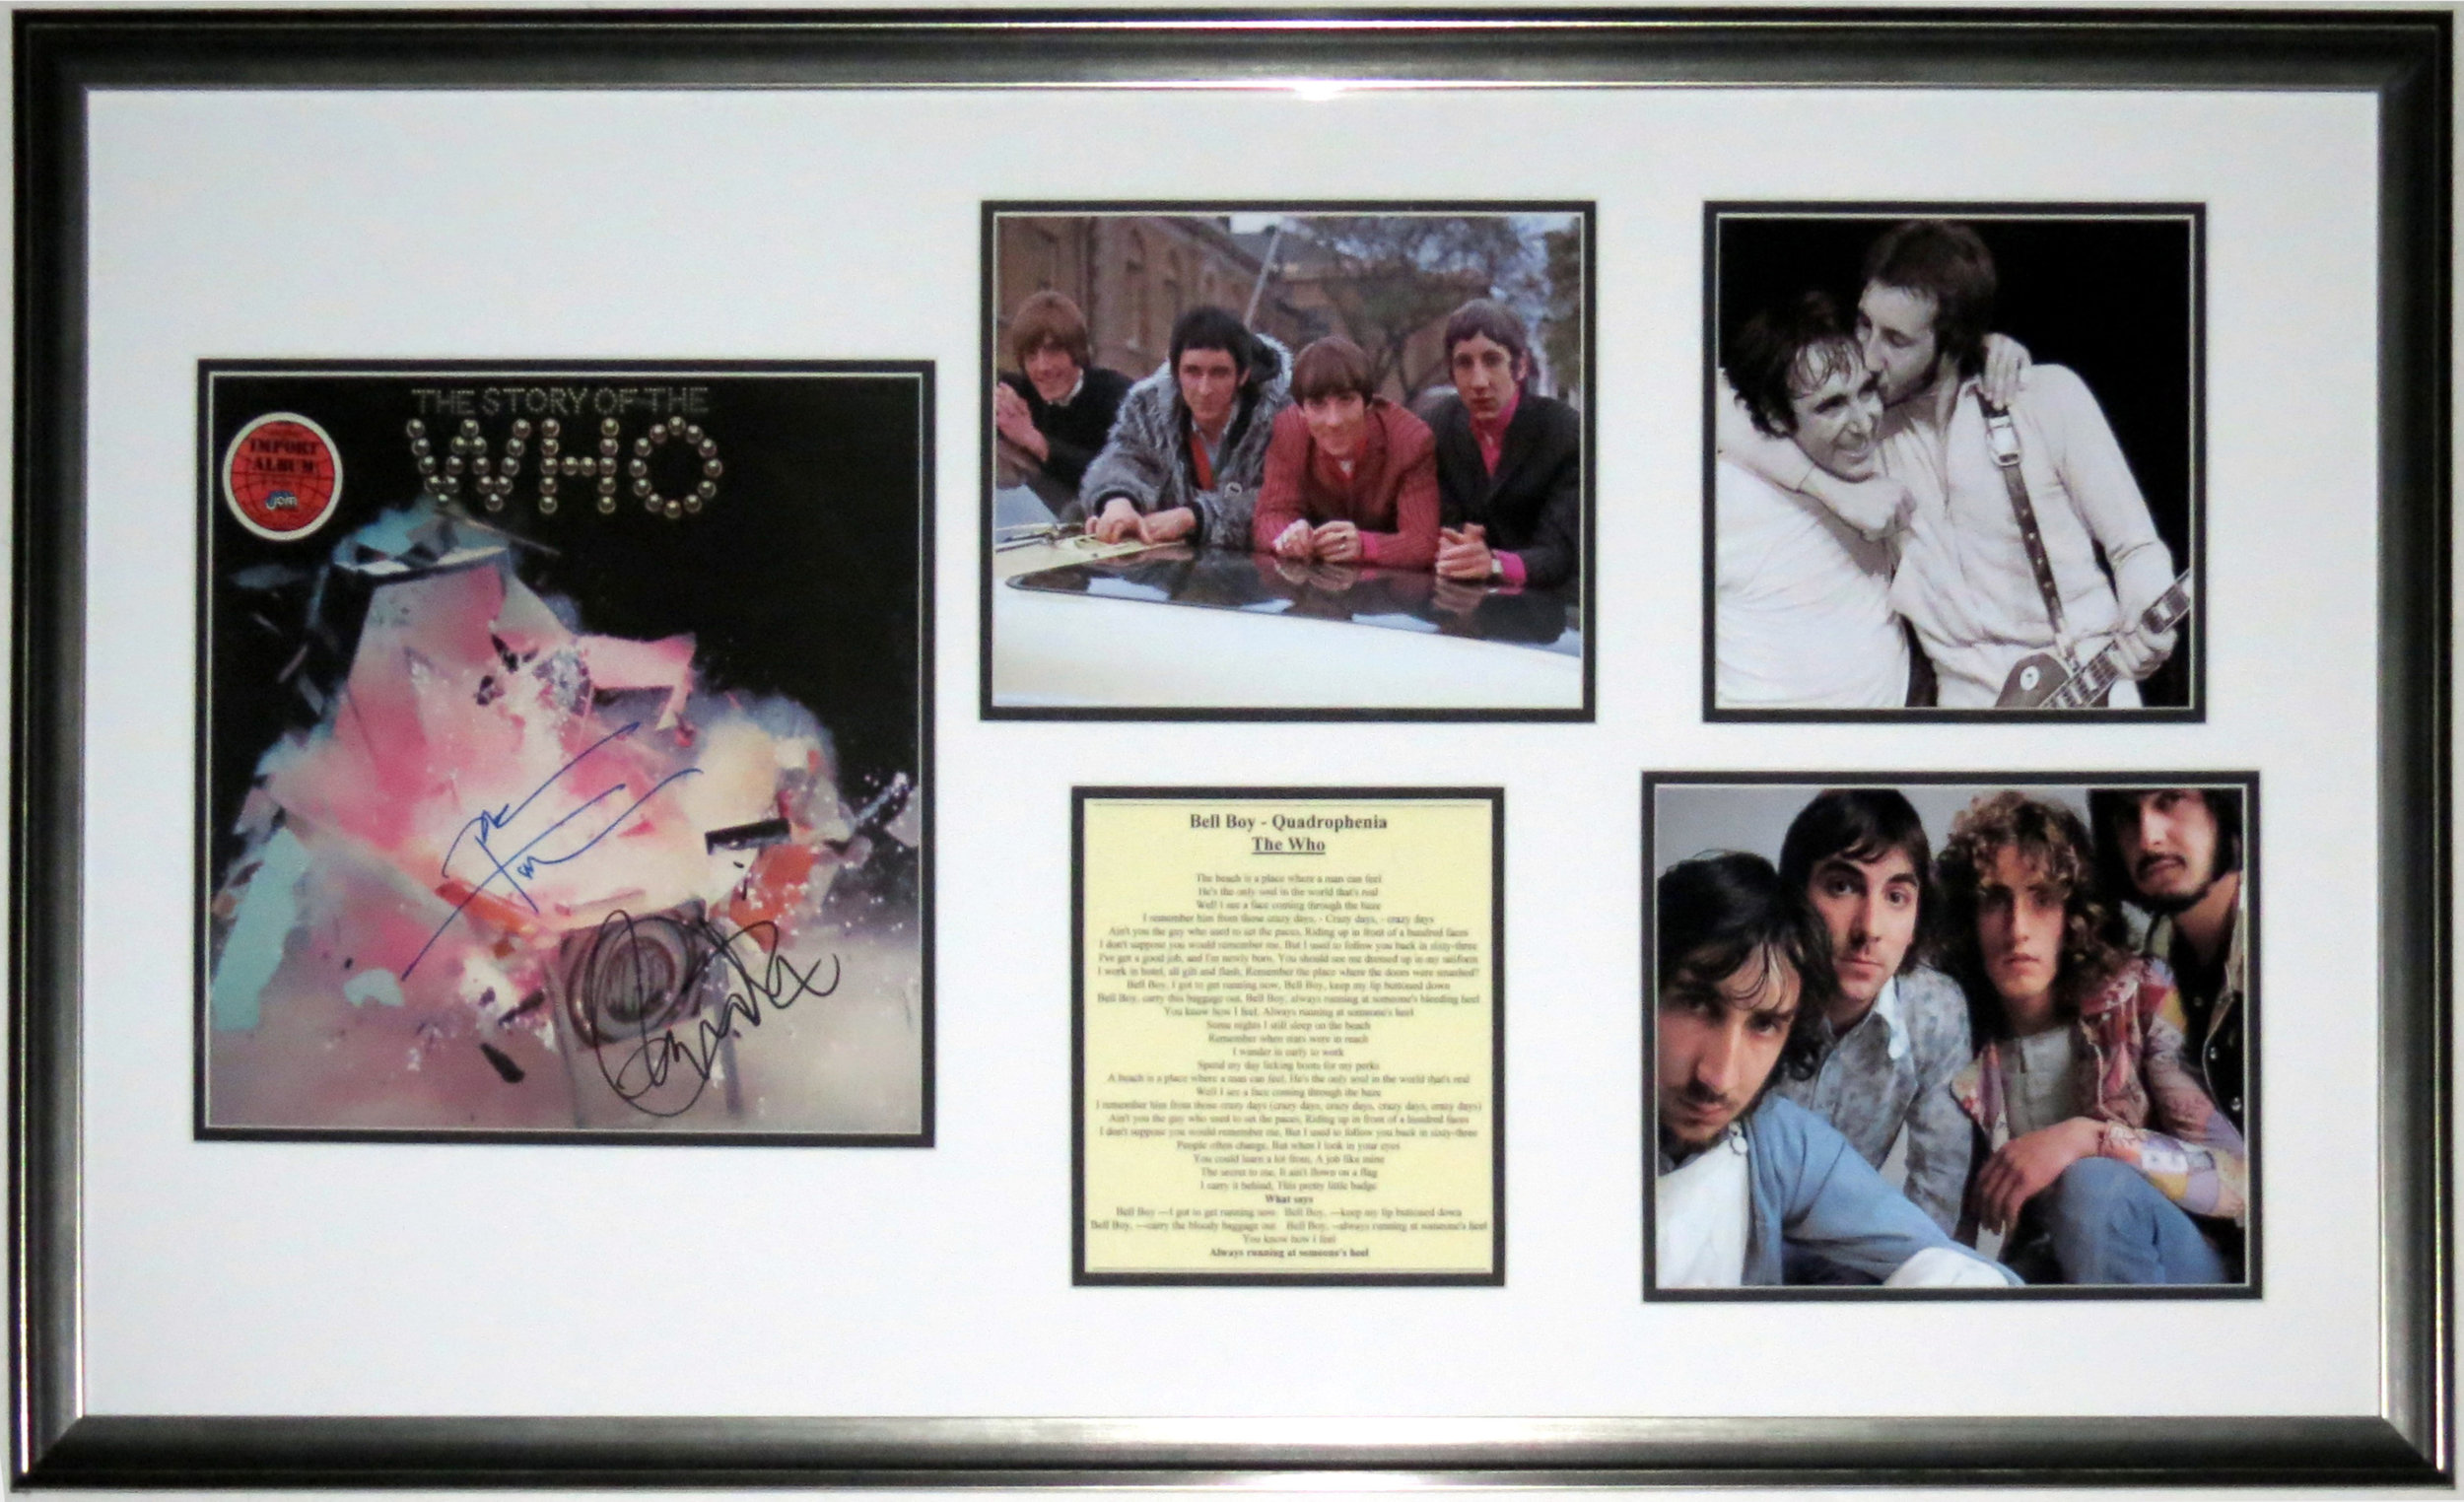 Keith Moon & Pete Townshend Dual Signed The Who Greatest Hits Album - JSA COA Authenticated - Professionally Framed & Photograph Compilation